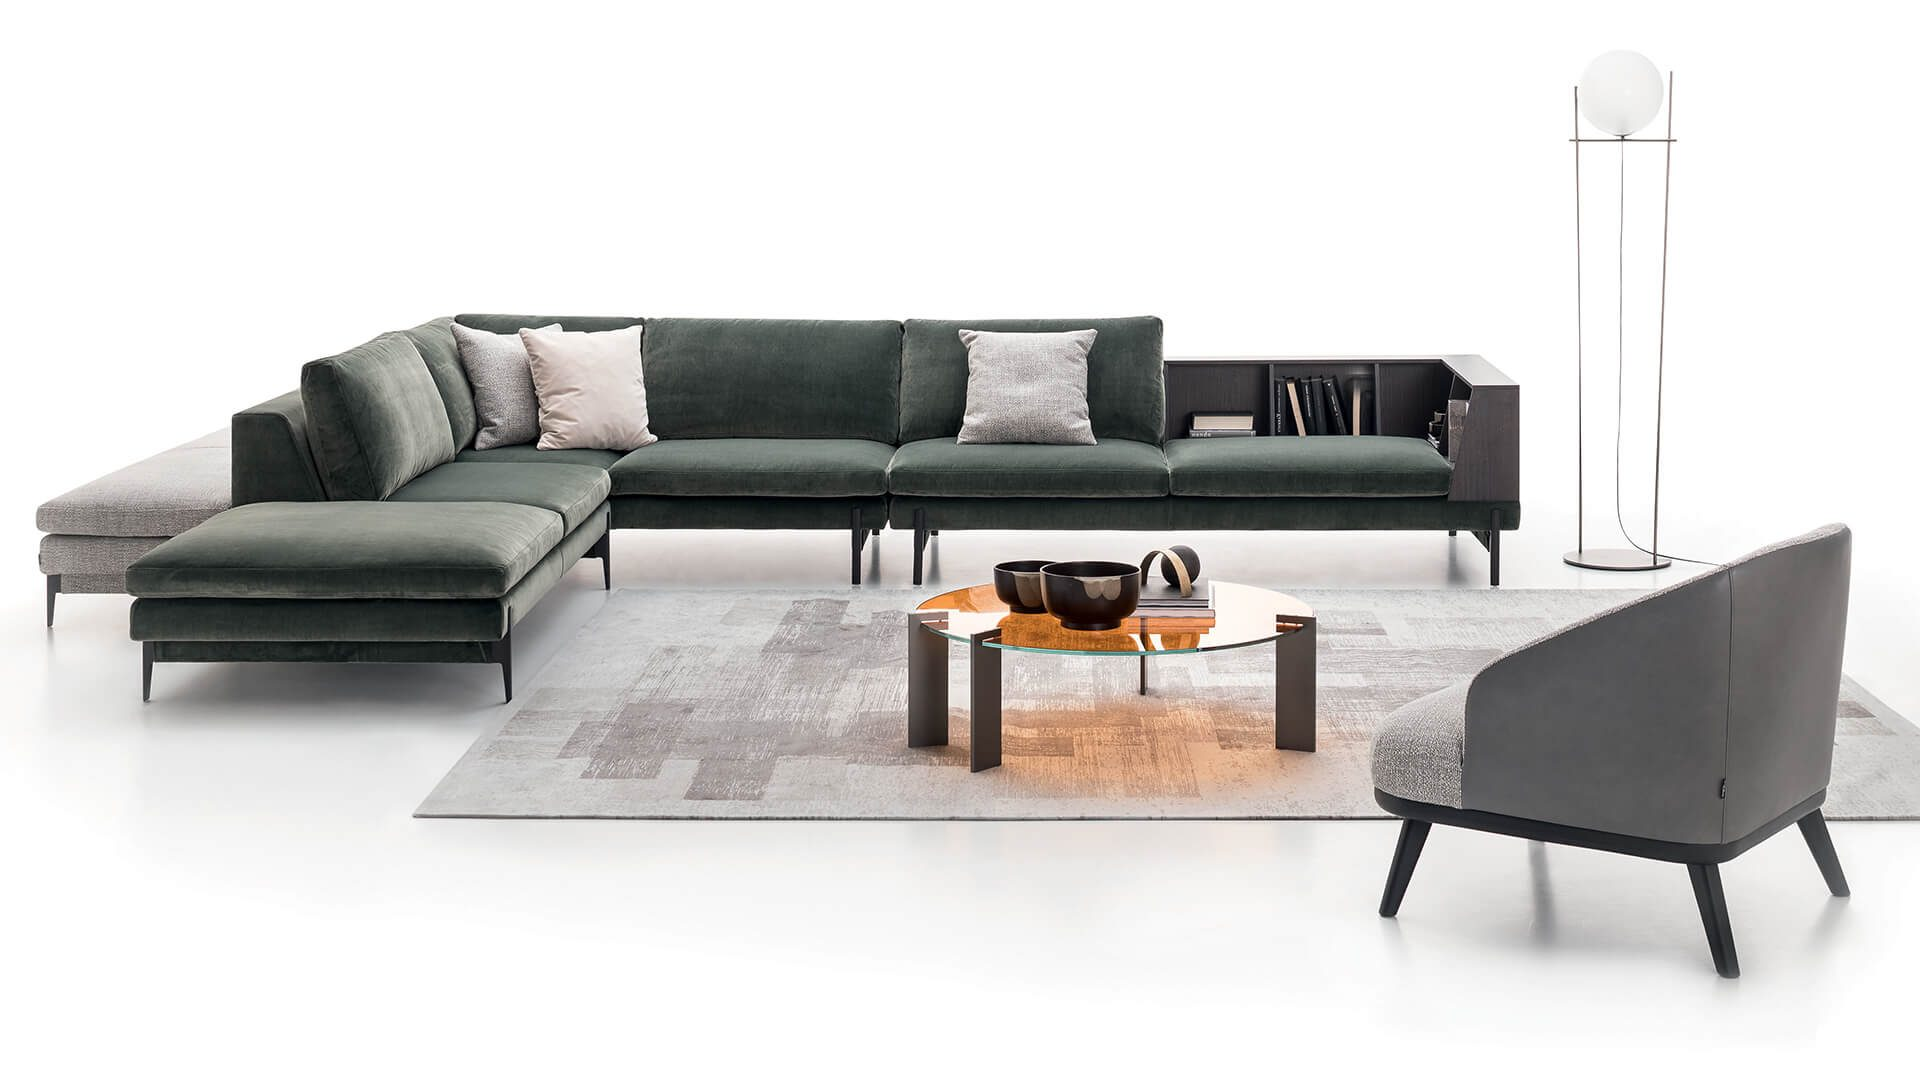 Italia Design Möbel Ditre Italia Italian Leather Sofas Beds And Armchair